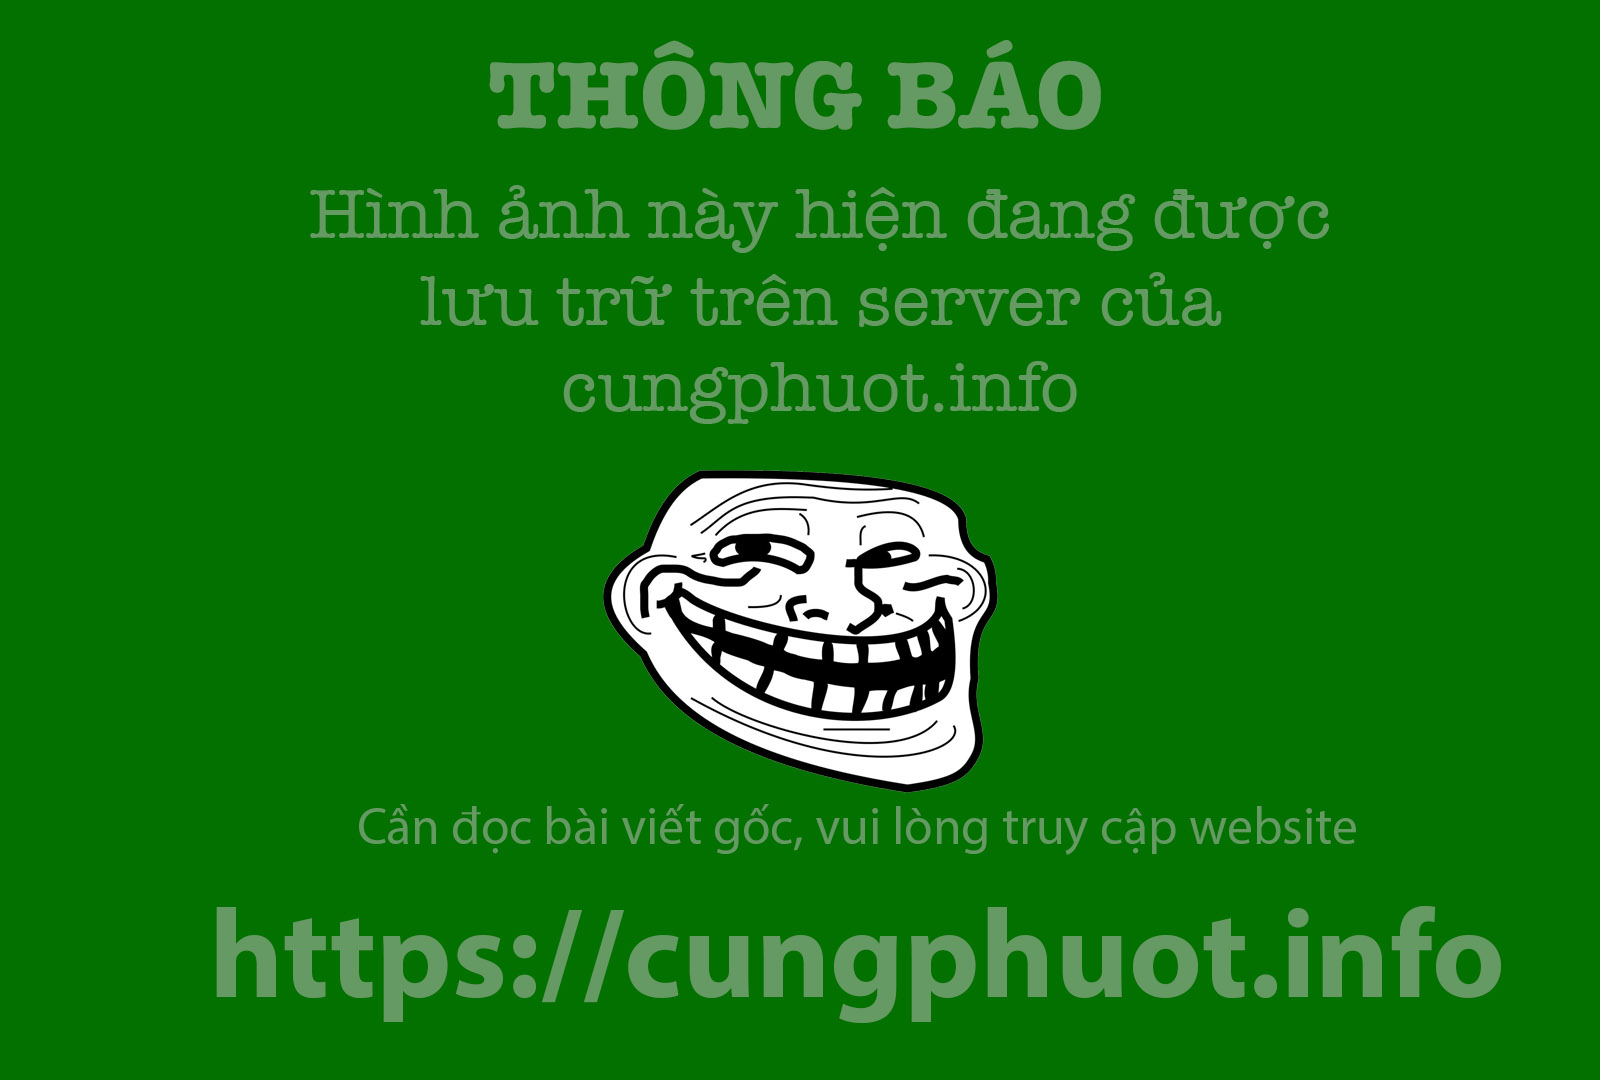 Hotels and Motels in Dinh Hoa, Thai Nguyen